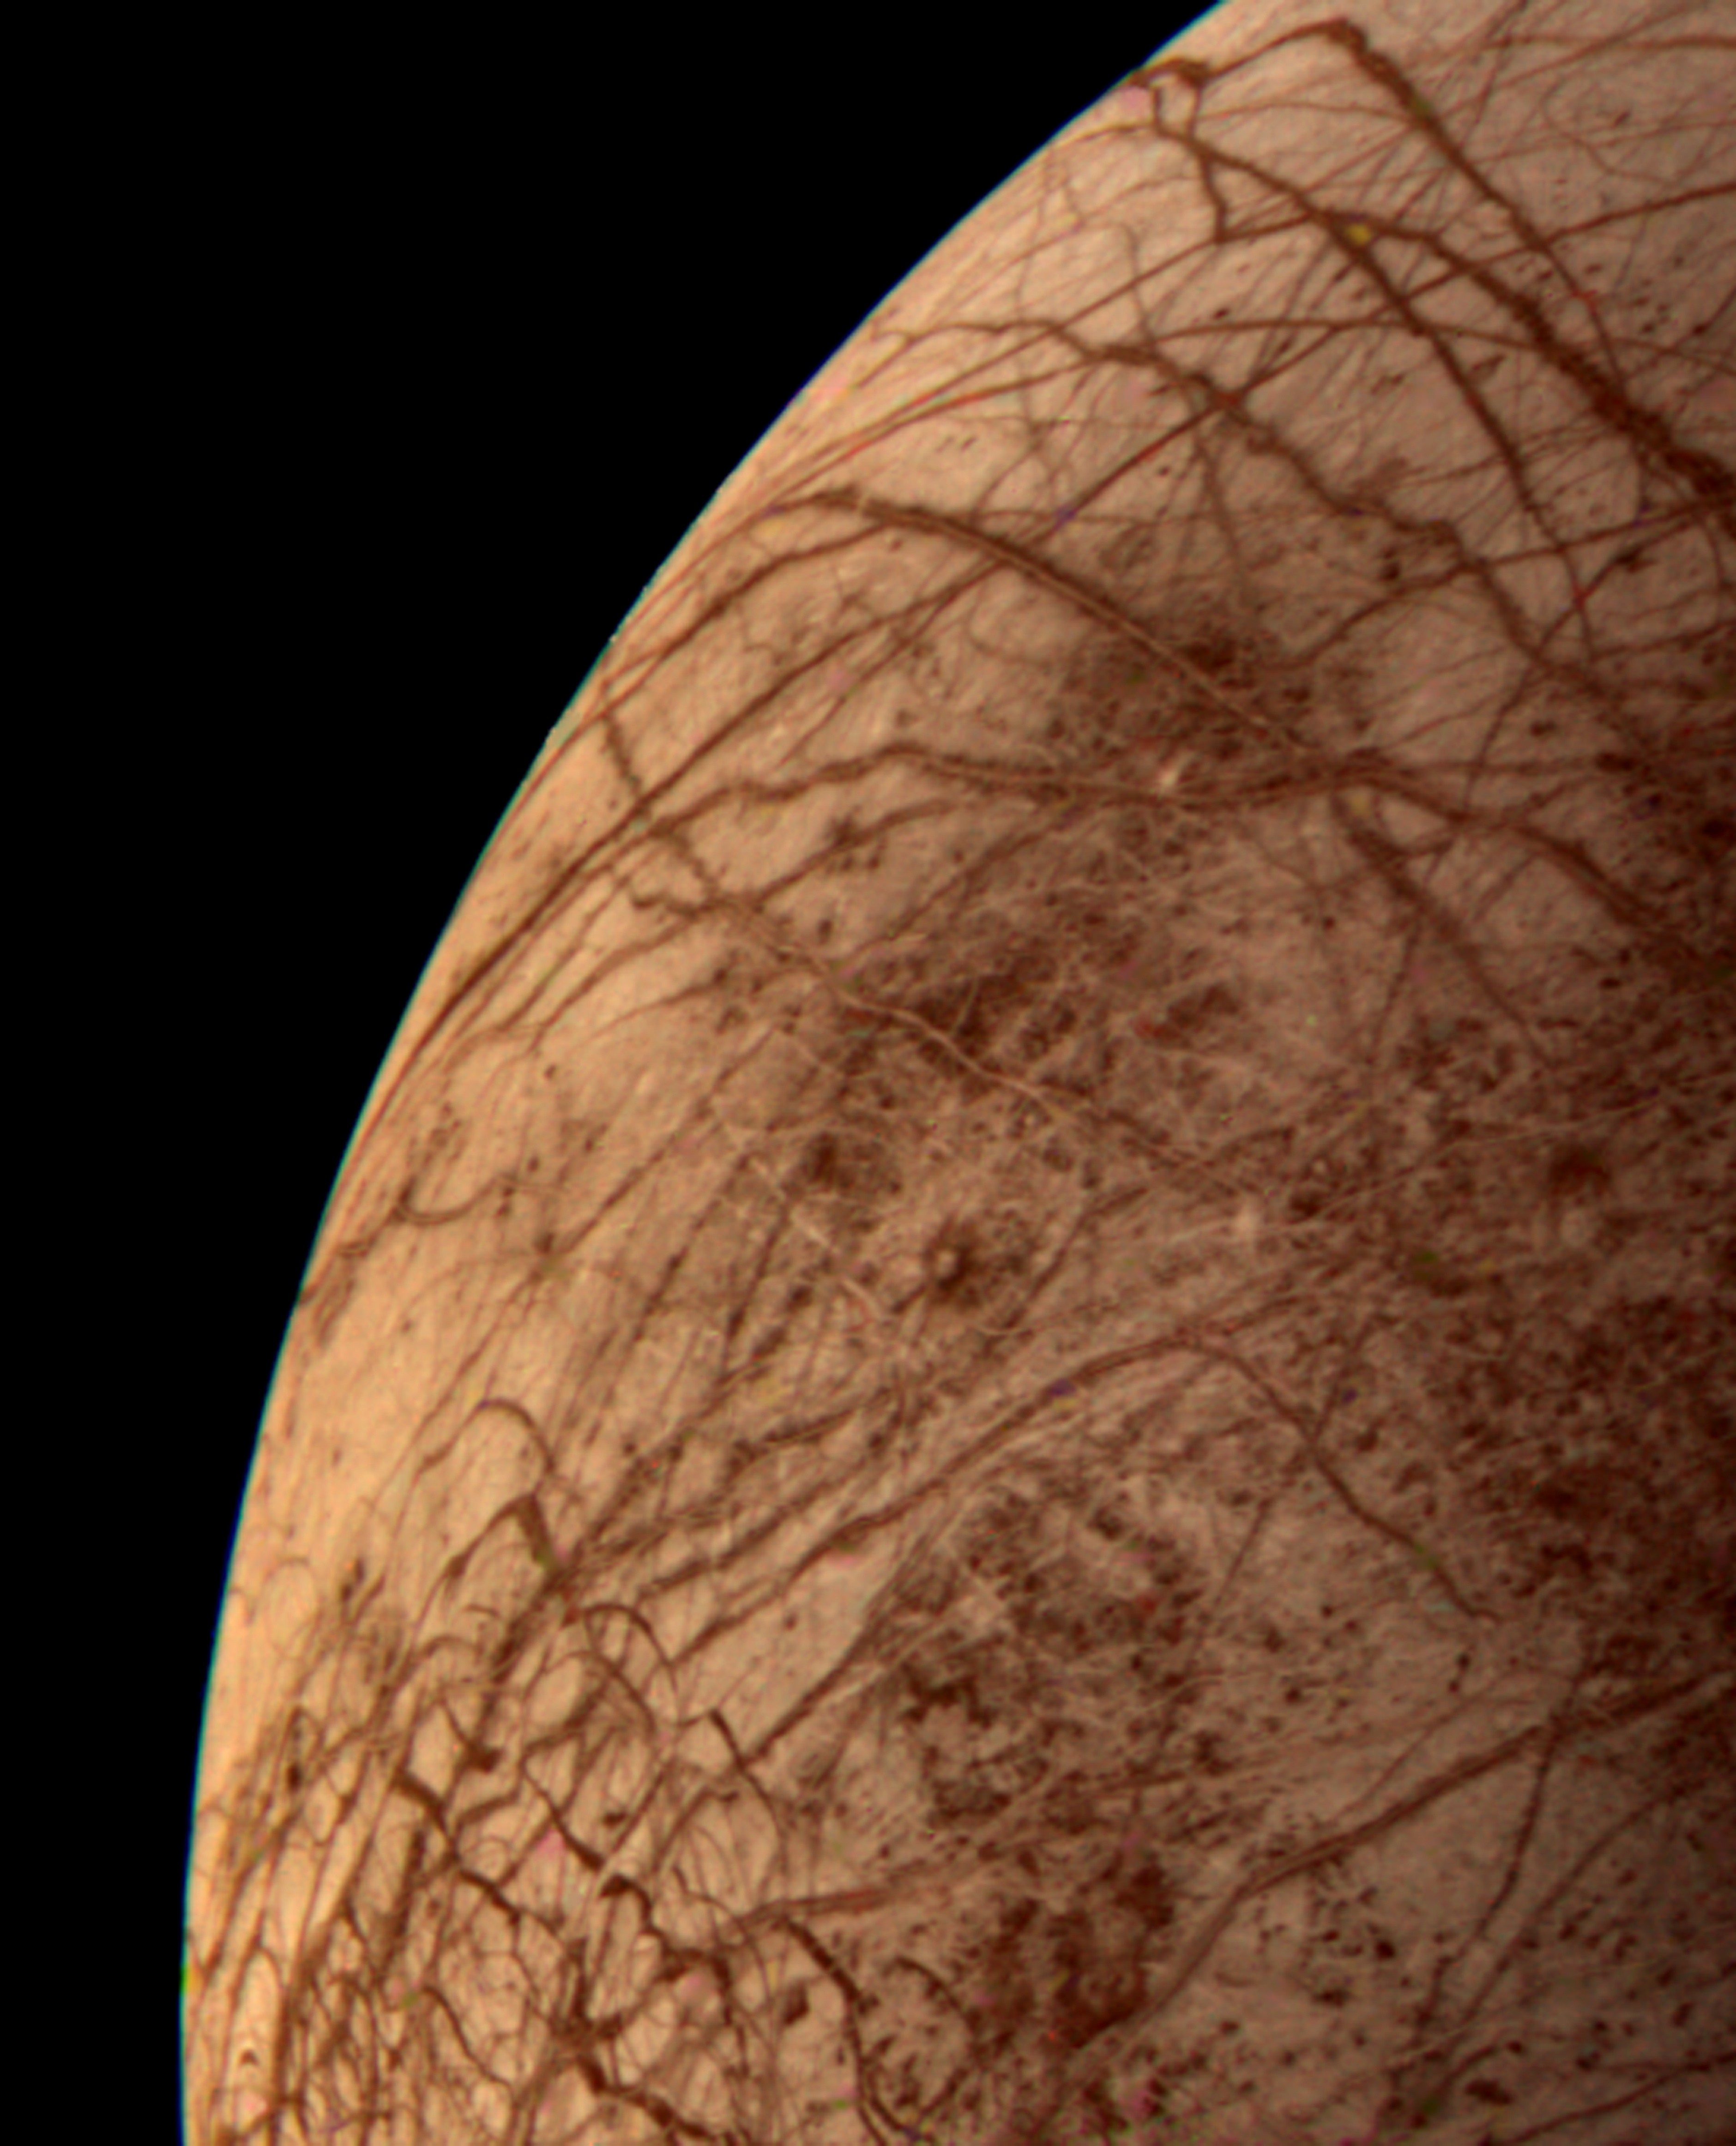 This color image of the Jovian moon Europa was taken from the Voyager 2 spacecraft on July 9, 1979.